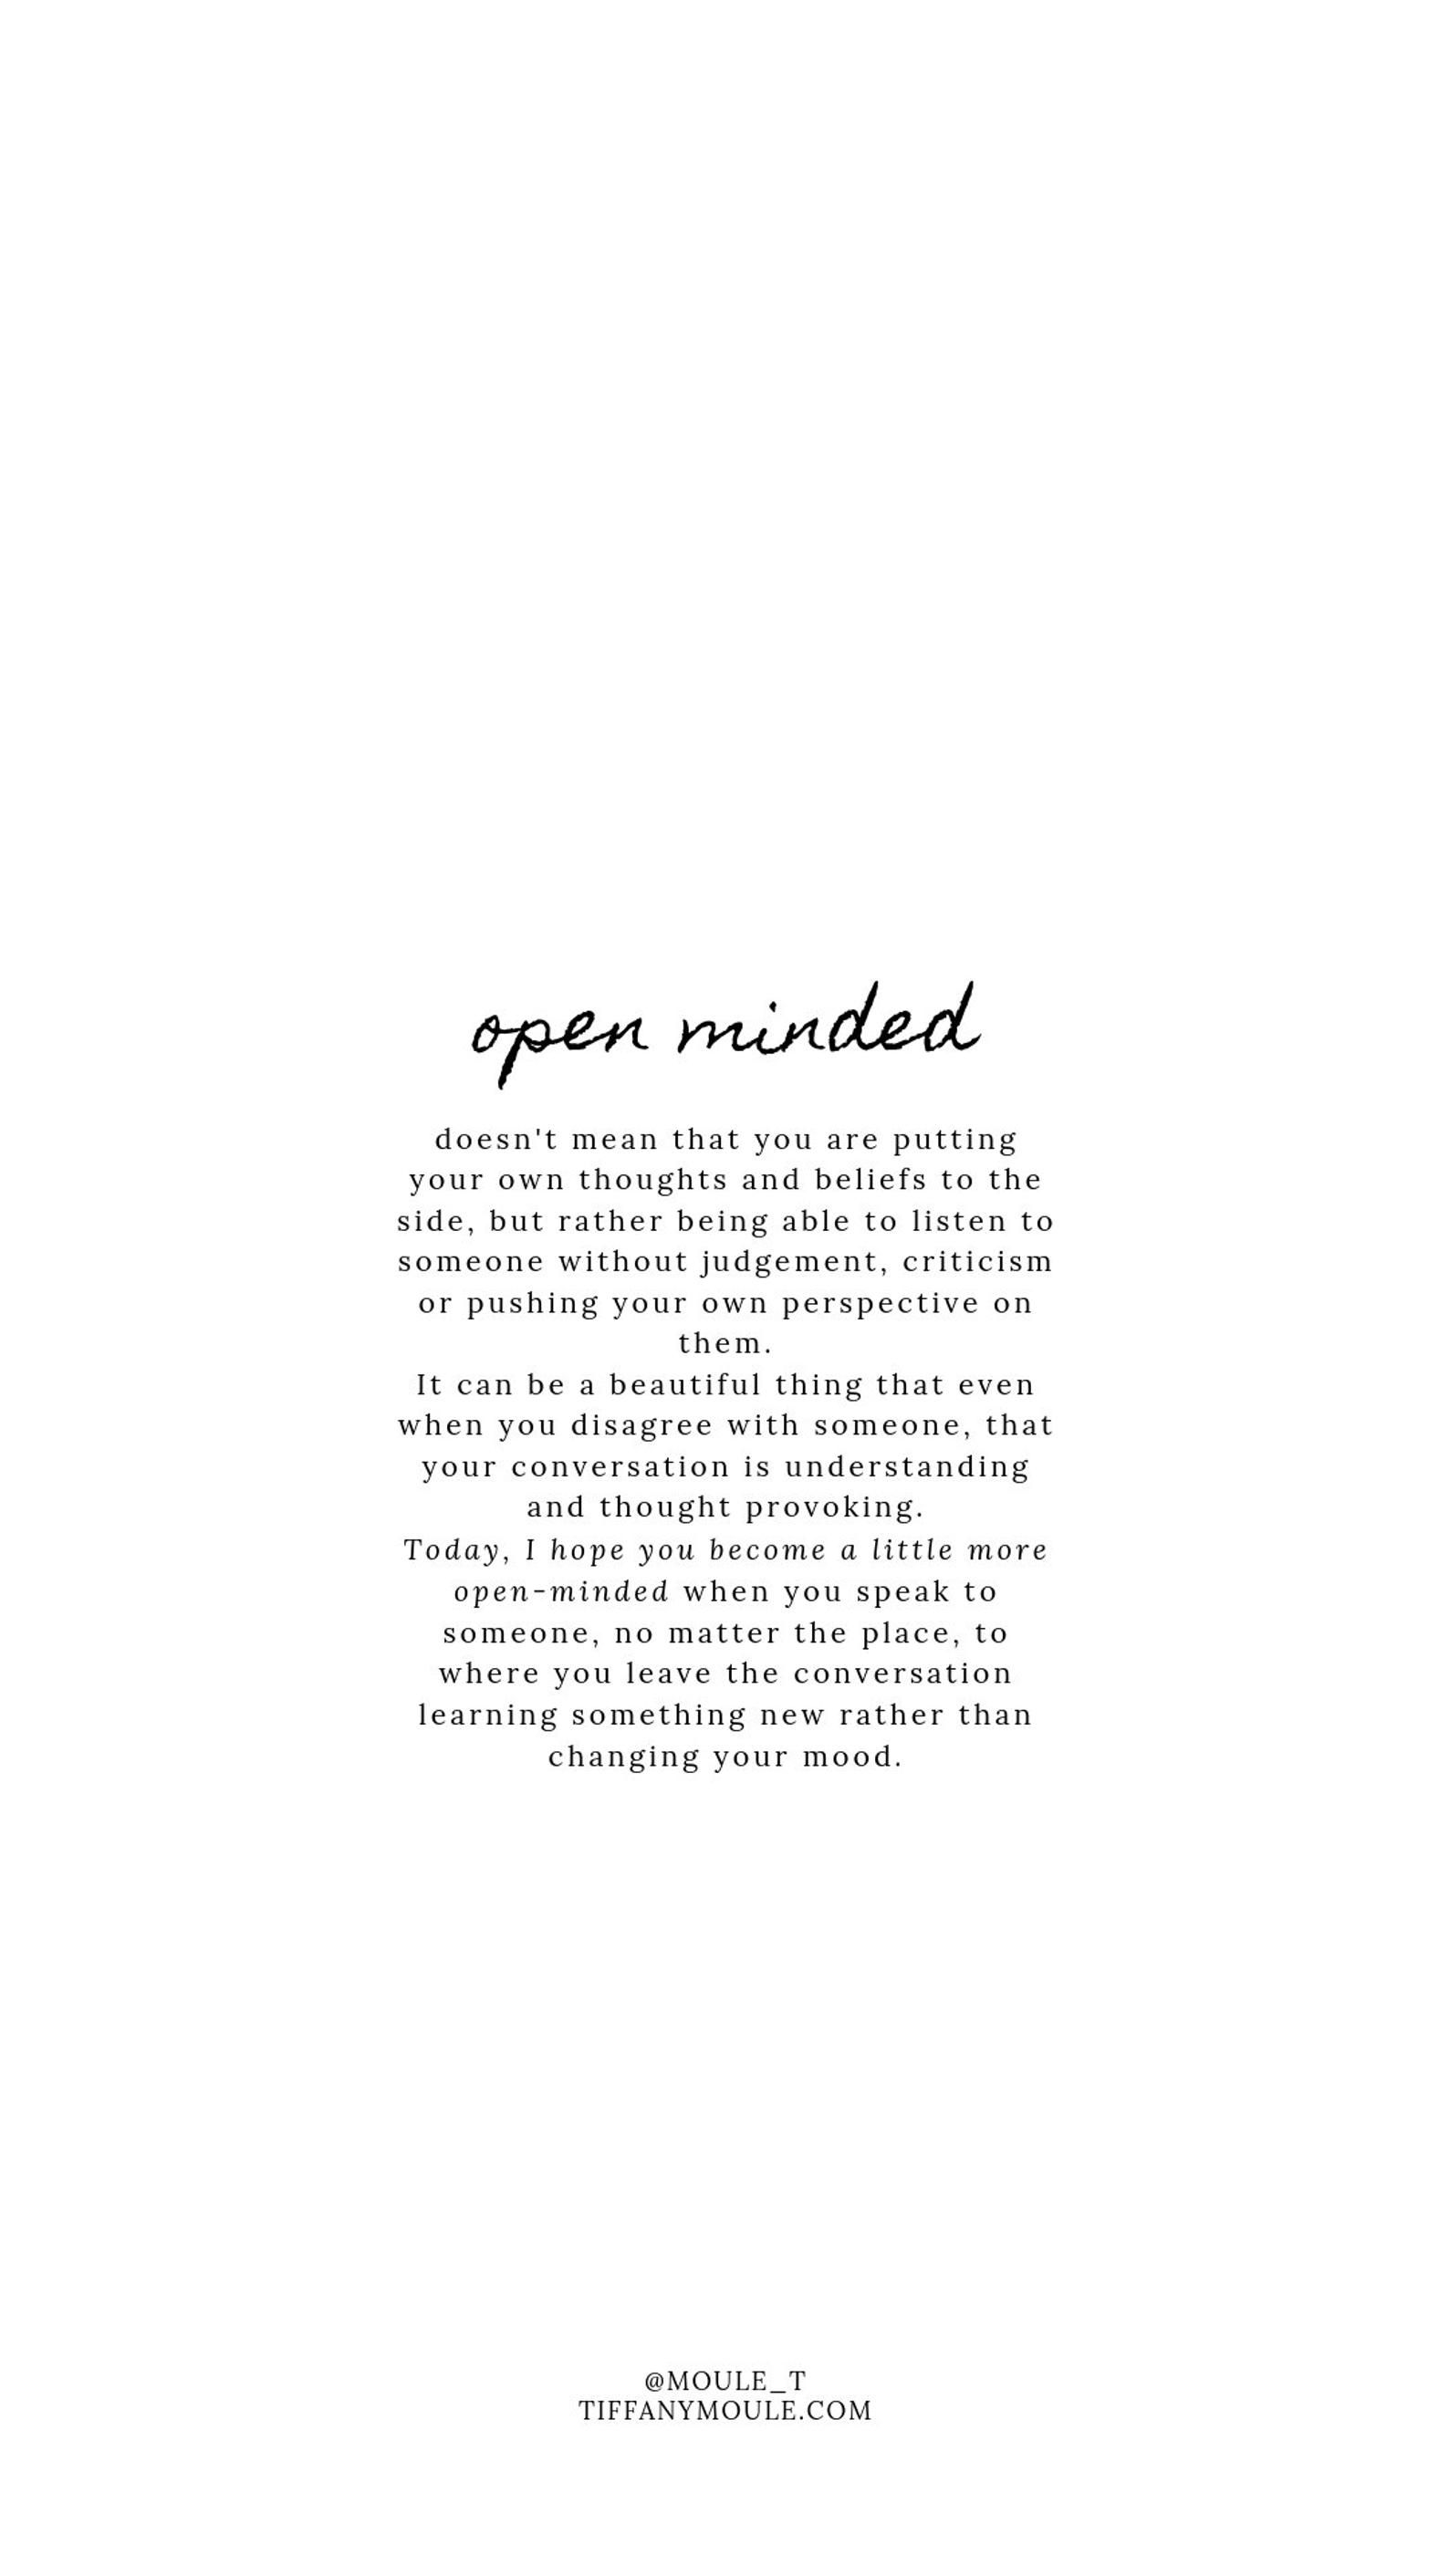 Open Minded Quote By Tiffany Moule Etsy Self Healing Quotes Perspective Quotes Mindfulness Quotes